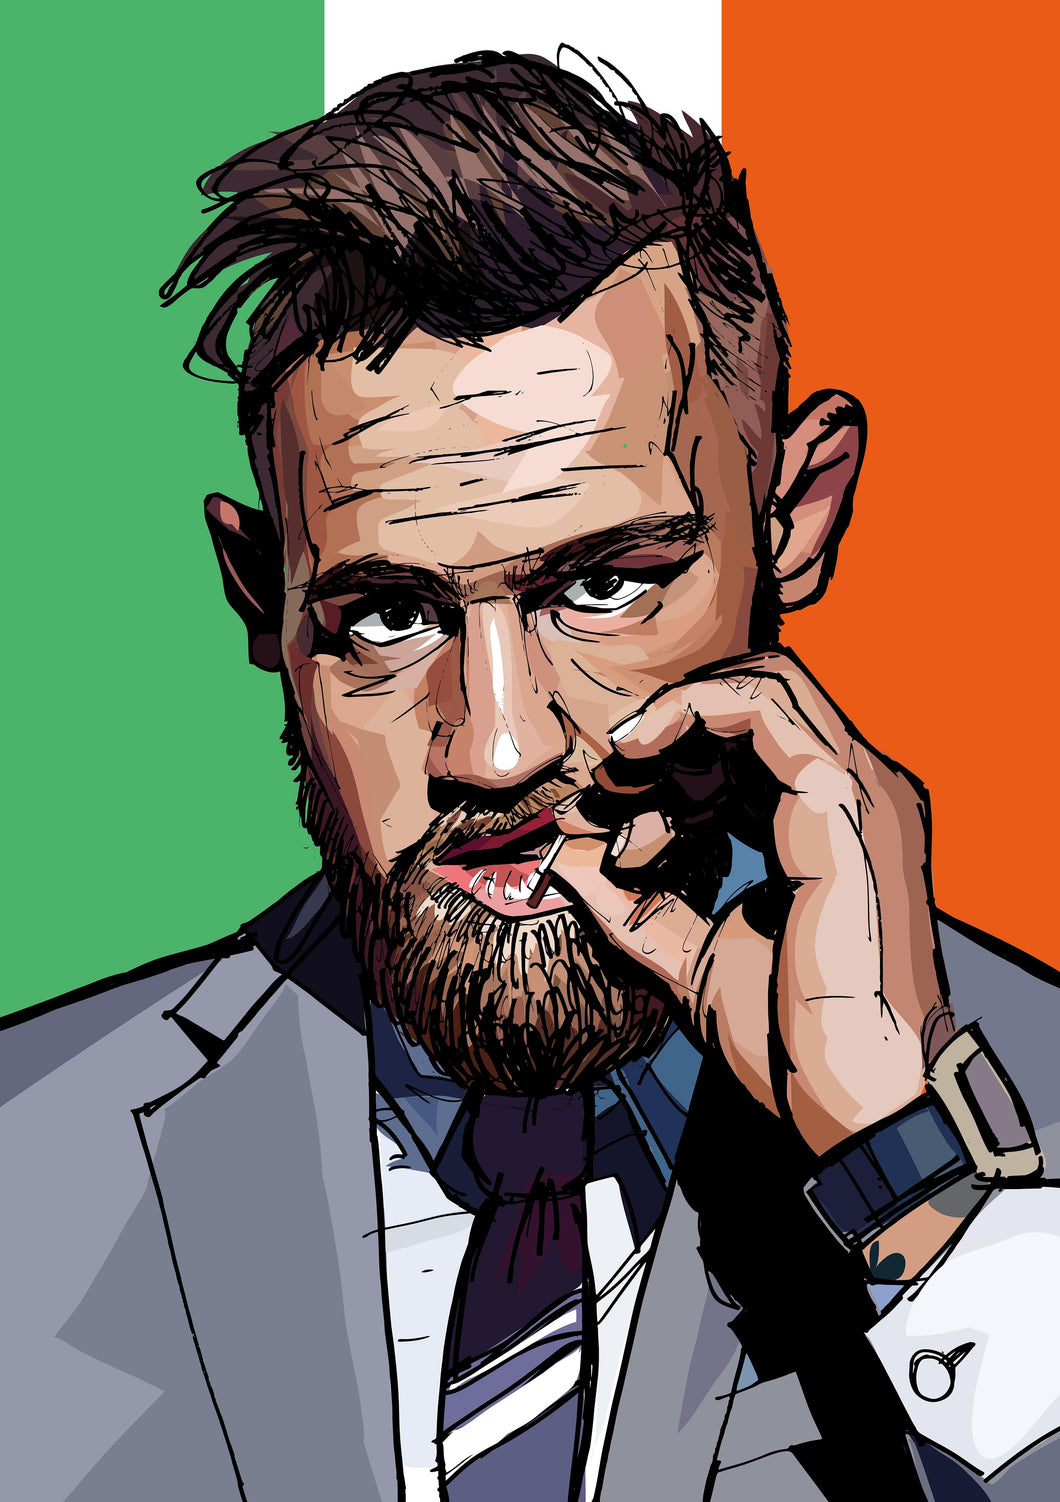 Will Prince Pop Art Connor McGregor